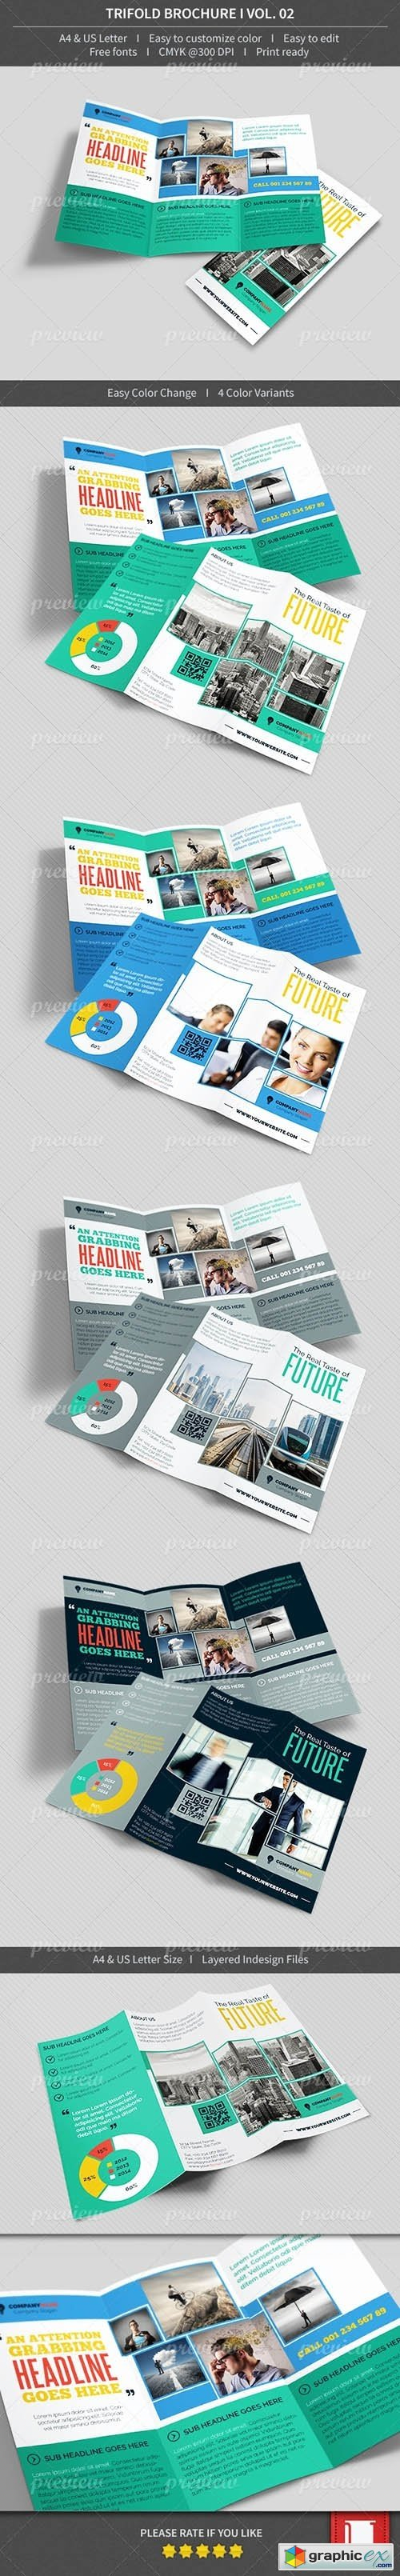 CodeGrape Trifold Brochure - Volume 02